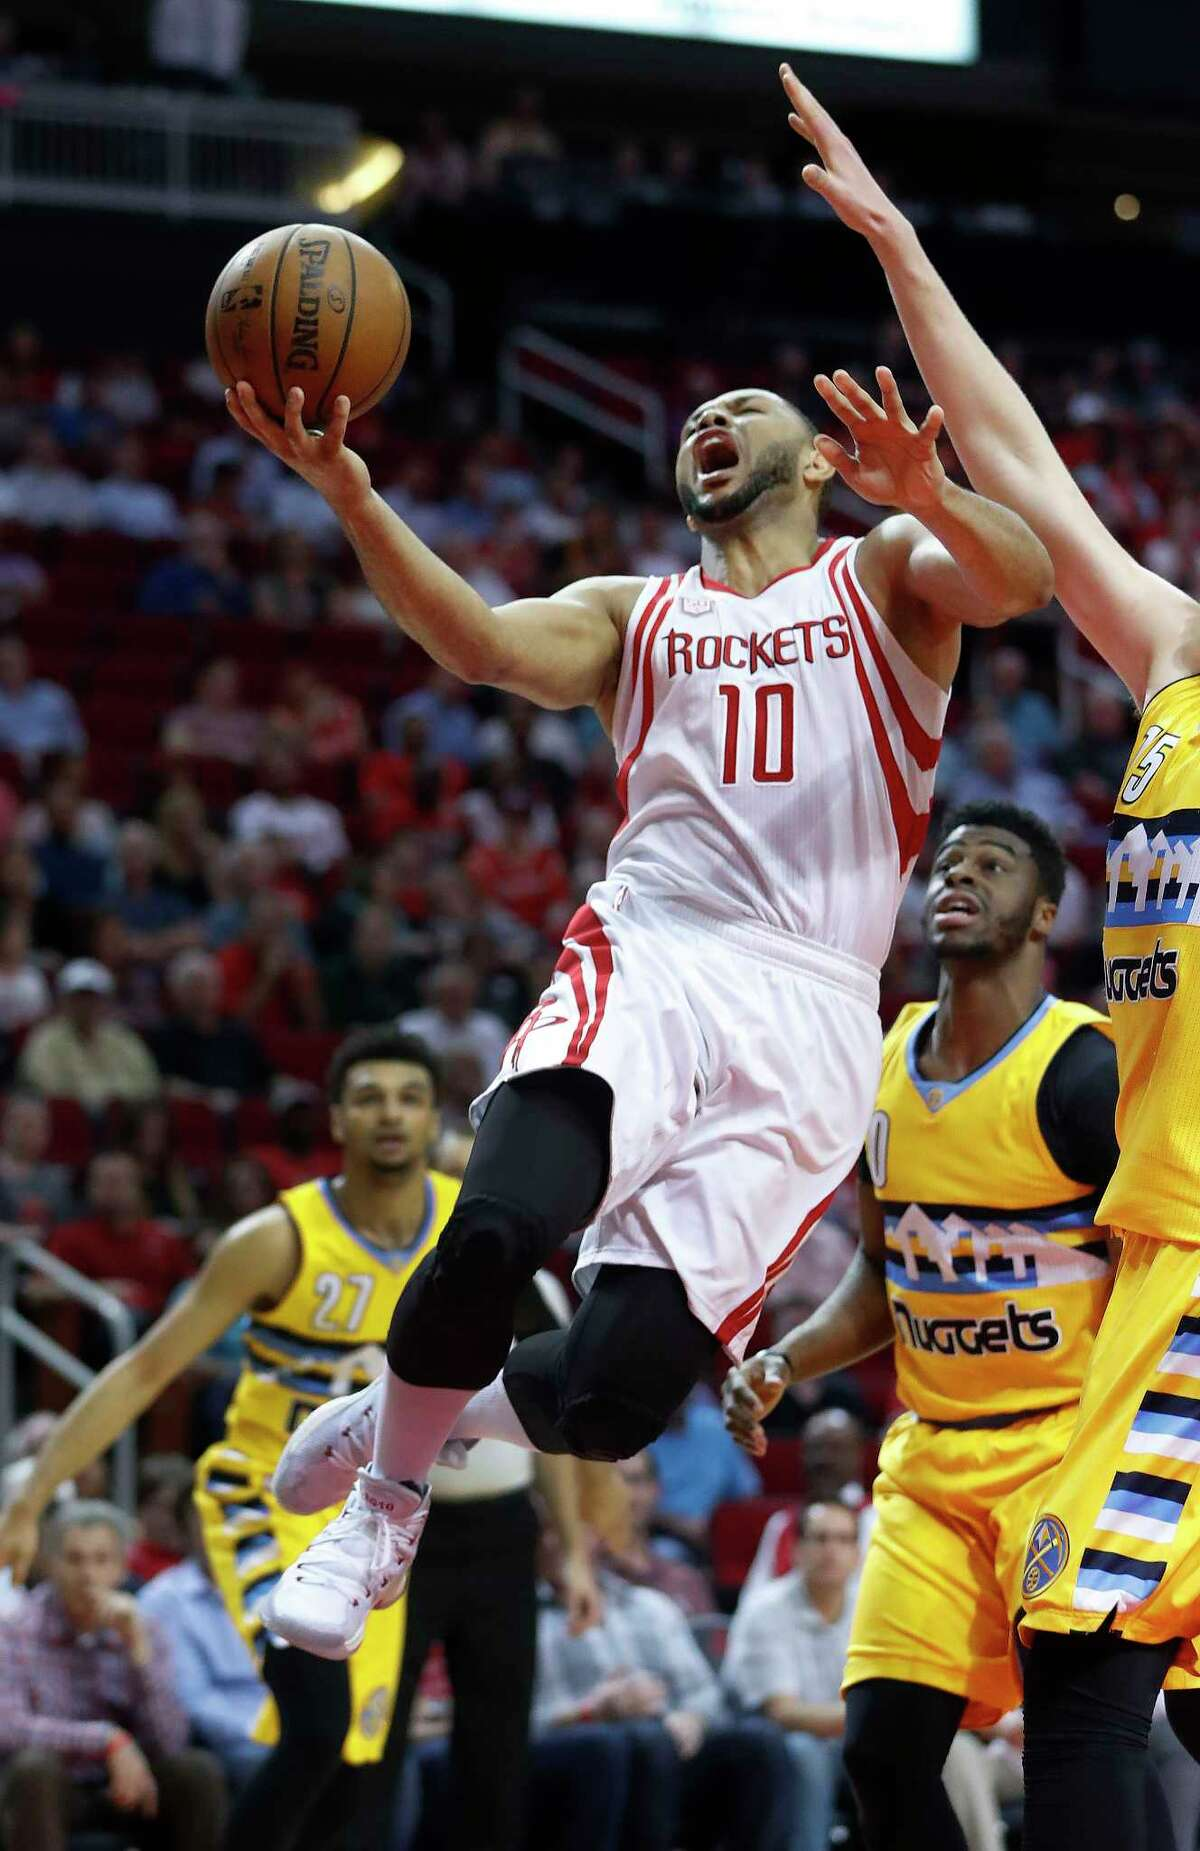 Houston Rockets guard Eric Gordon (10) drives to the basket against Denver Nuggets defense during the first half of an NBA basketball game, Monday, March 20, 2017, at the Toyota Center, in Houston.